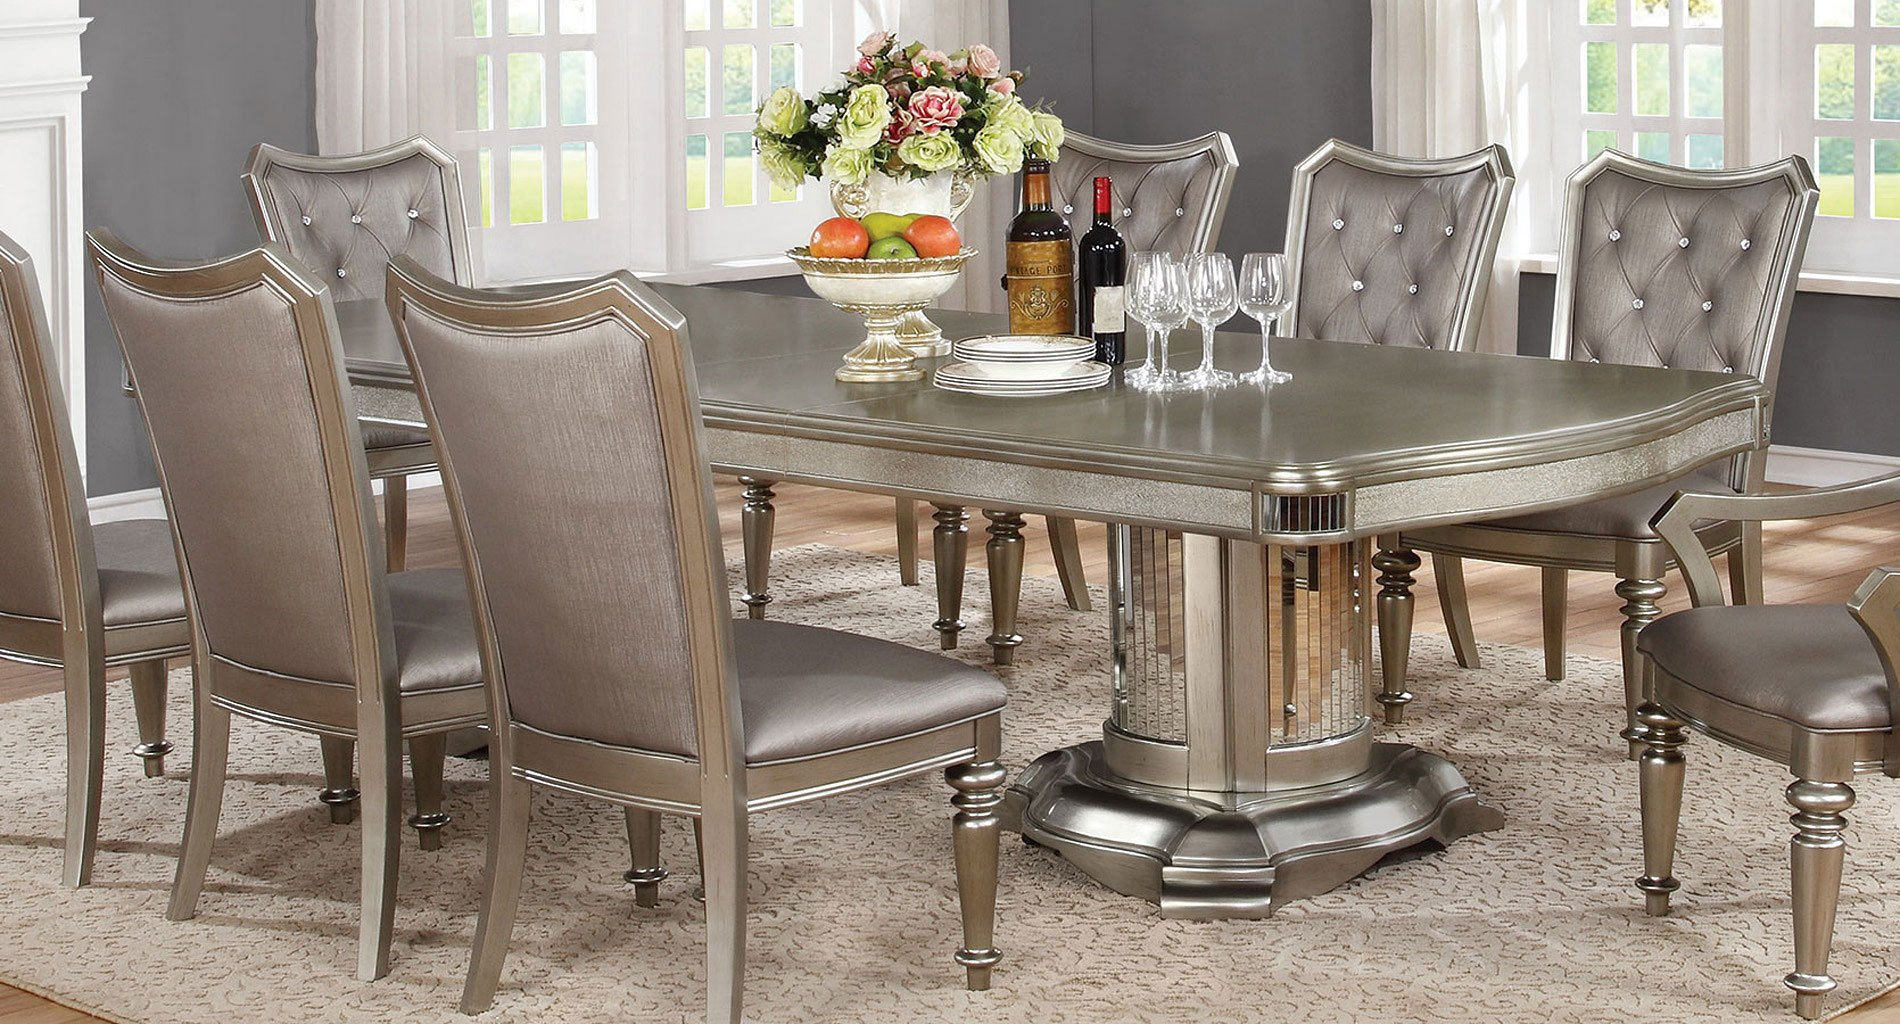 Bling Game Dining Room Set